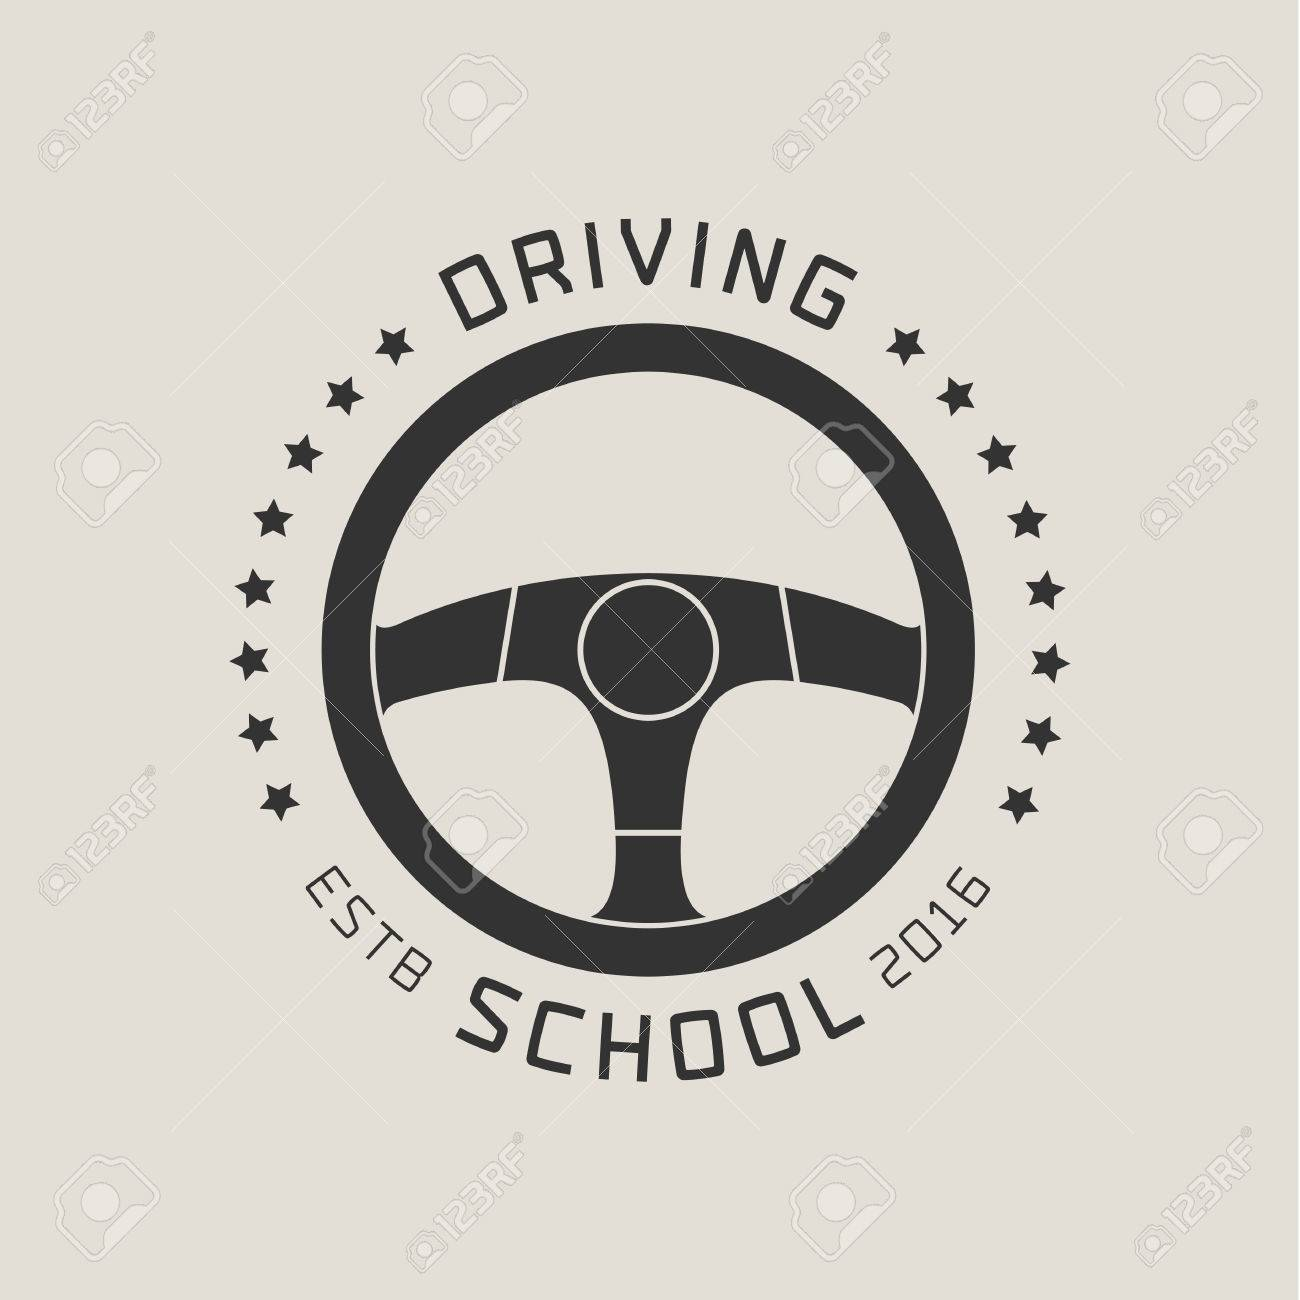 driving license school vector logo sign emblem steering wheel royalty free cliparts vectors and stock illustration image 69002181 driving license school vector logo sign emblem steering wheel